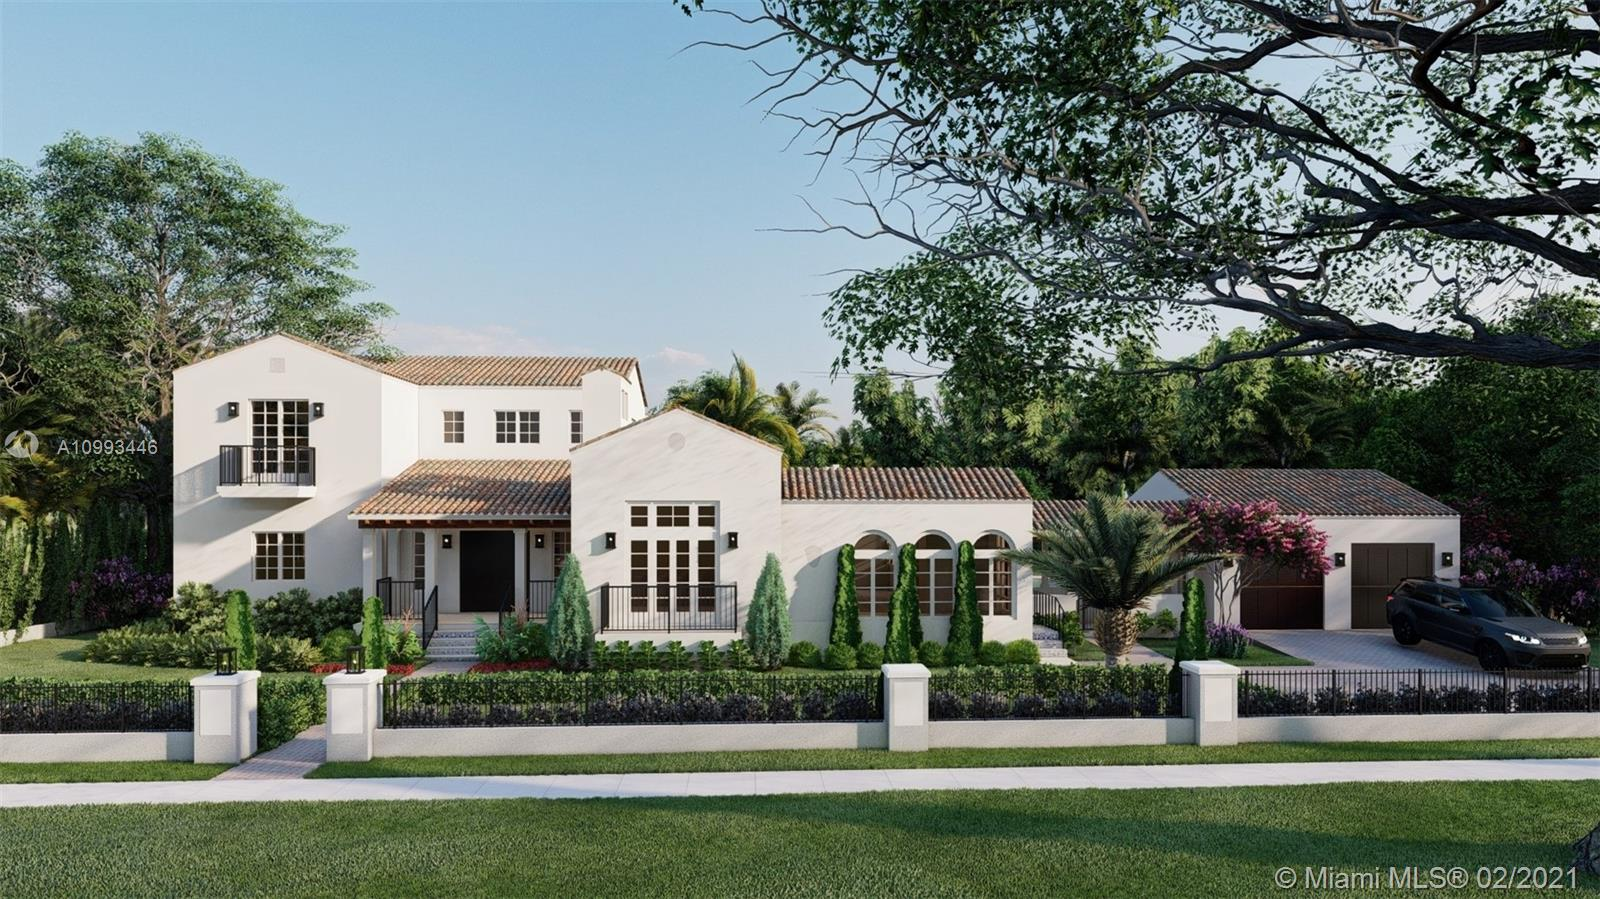 A modern twist on the Mediterranean Revival Architecture that inspired the Coral Gables neighborhood, La Bella Valencia is a newly built, generator ready home embodying ideal Mediterranean style w/ contemporary touches. The property's 18,750 sq ft lot is a coveted rarity in the Coral Gables area. Custom kitchen includes Monogram & Wolf appliances, Miele built-in coffee machine & wine cellar. Adding to the home's unique features is a den with a historic library showcasing a stone encased gas fireplace. The owner's suite is a balcony w/ pool views & spacious bath w/ a Toto toilet, soaking tub, waterfall showerheads, double sinks, & walk-in closet. Enjoy an outdoor terrace w/ a summer kitchen & spa, creating the perfect outdoor living experience. This abode offers privacy & prime location!